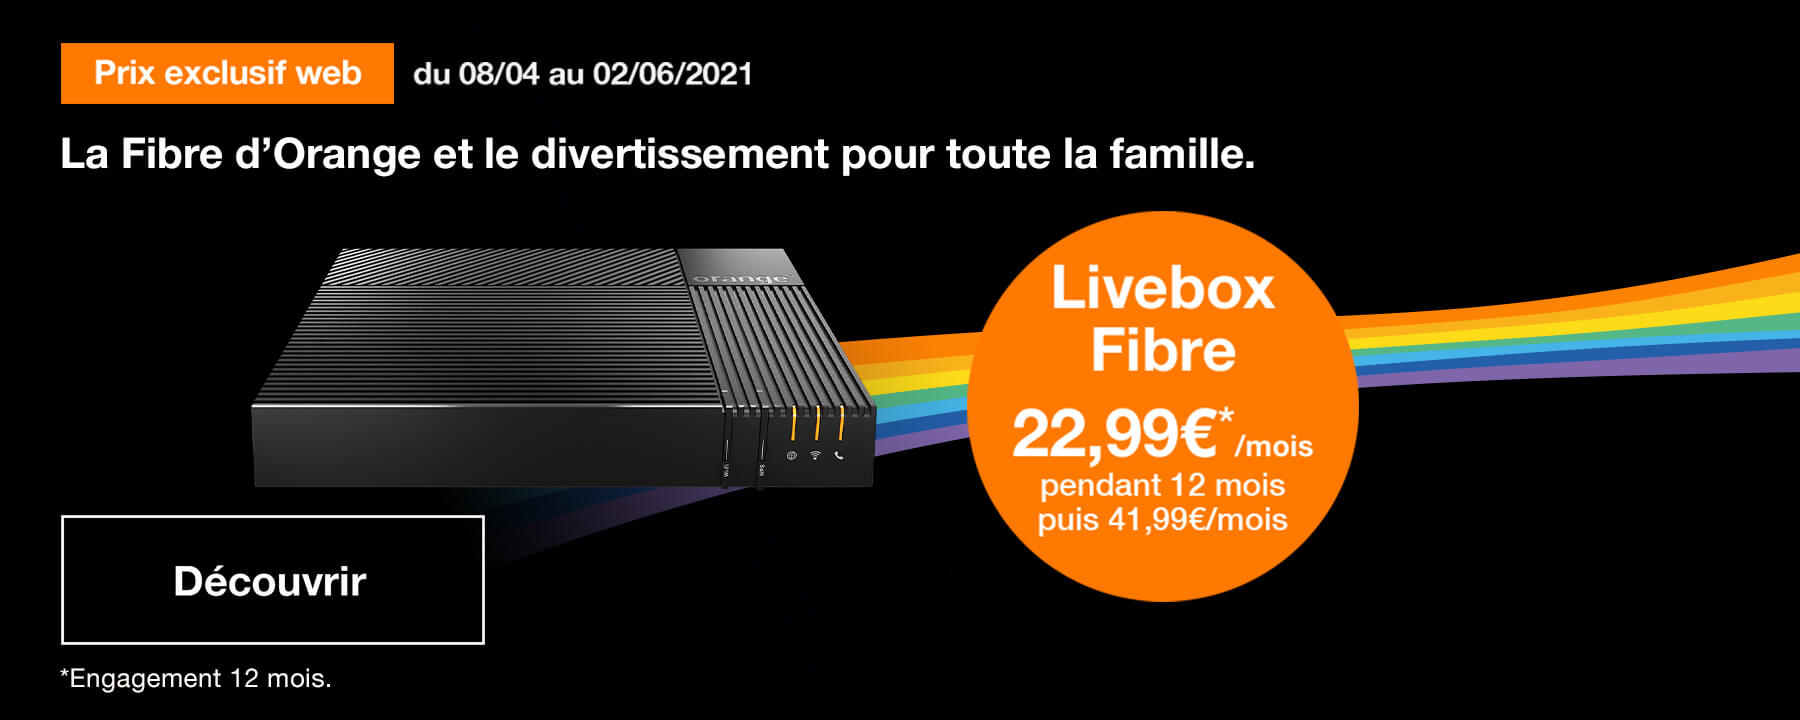 Prix eclusif web Livebox Fibre